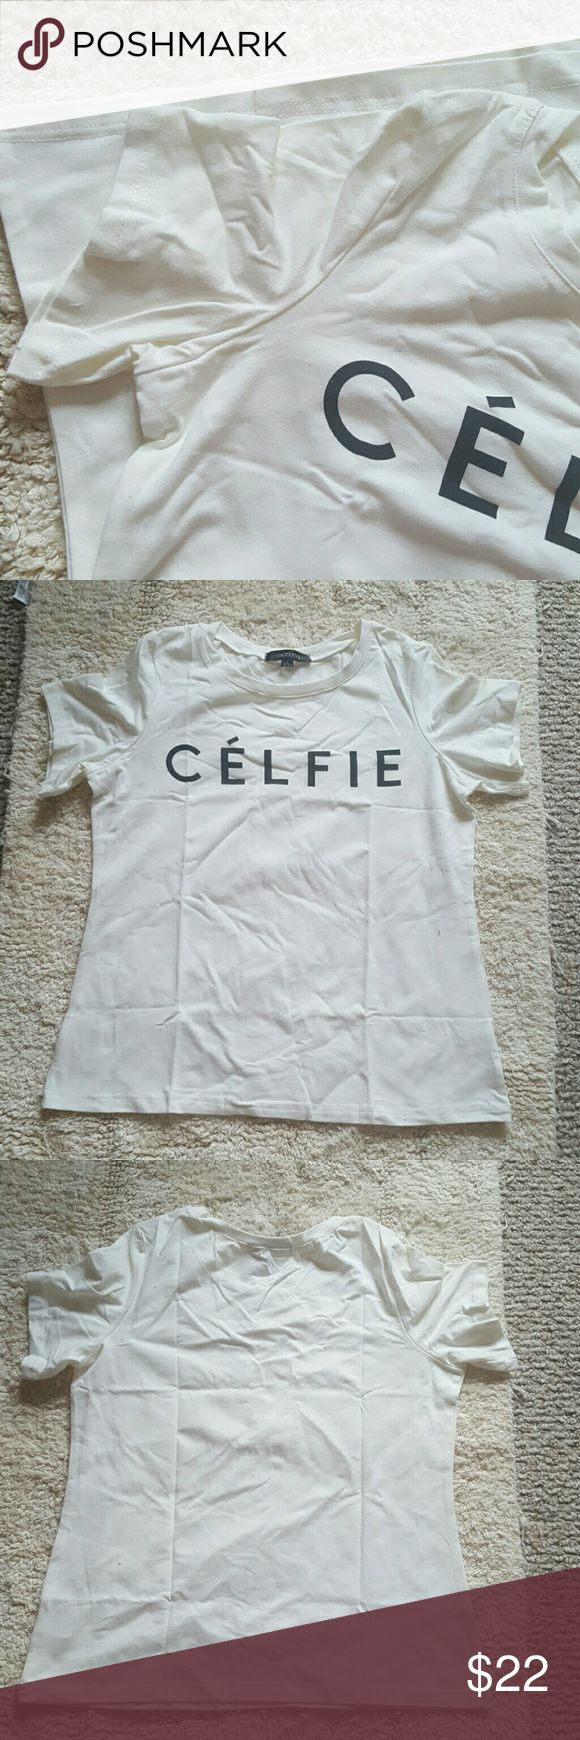 CELFIE SHORT SLEEVE TOP White top sizes large med and small available brand new Tops Tees - Short Sleeve